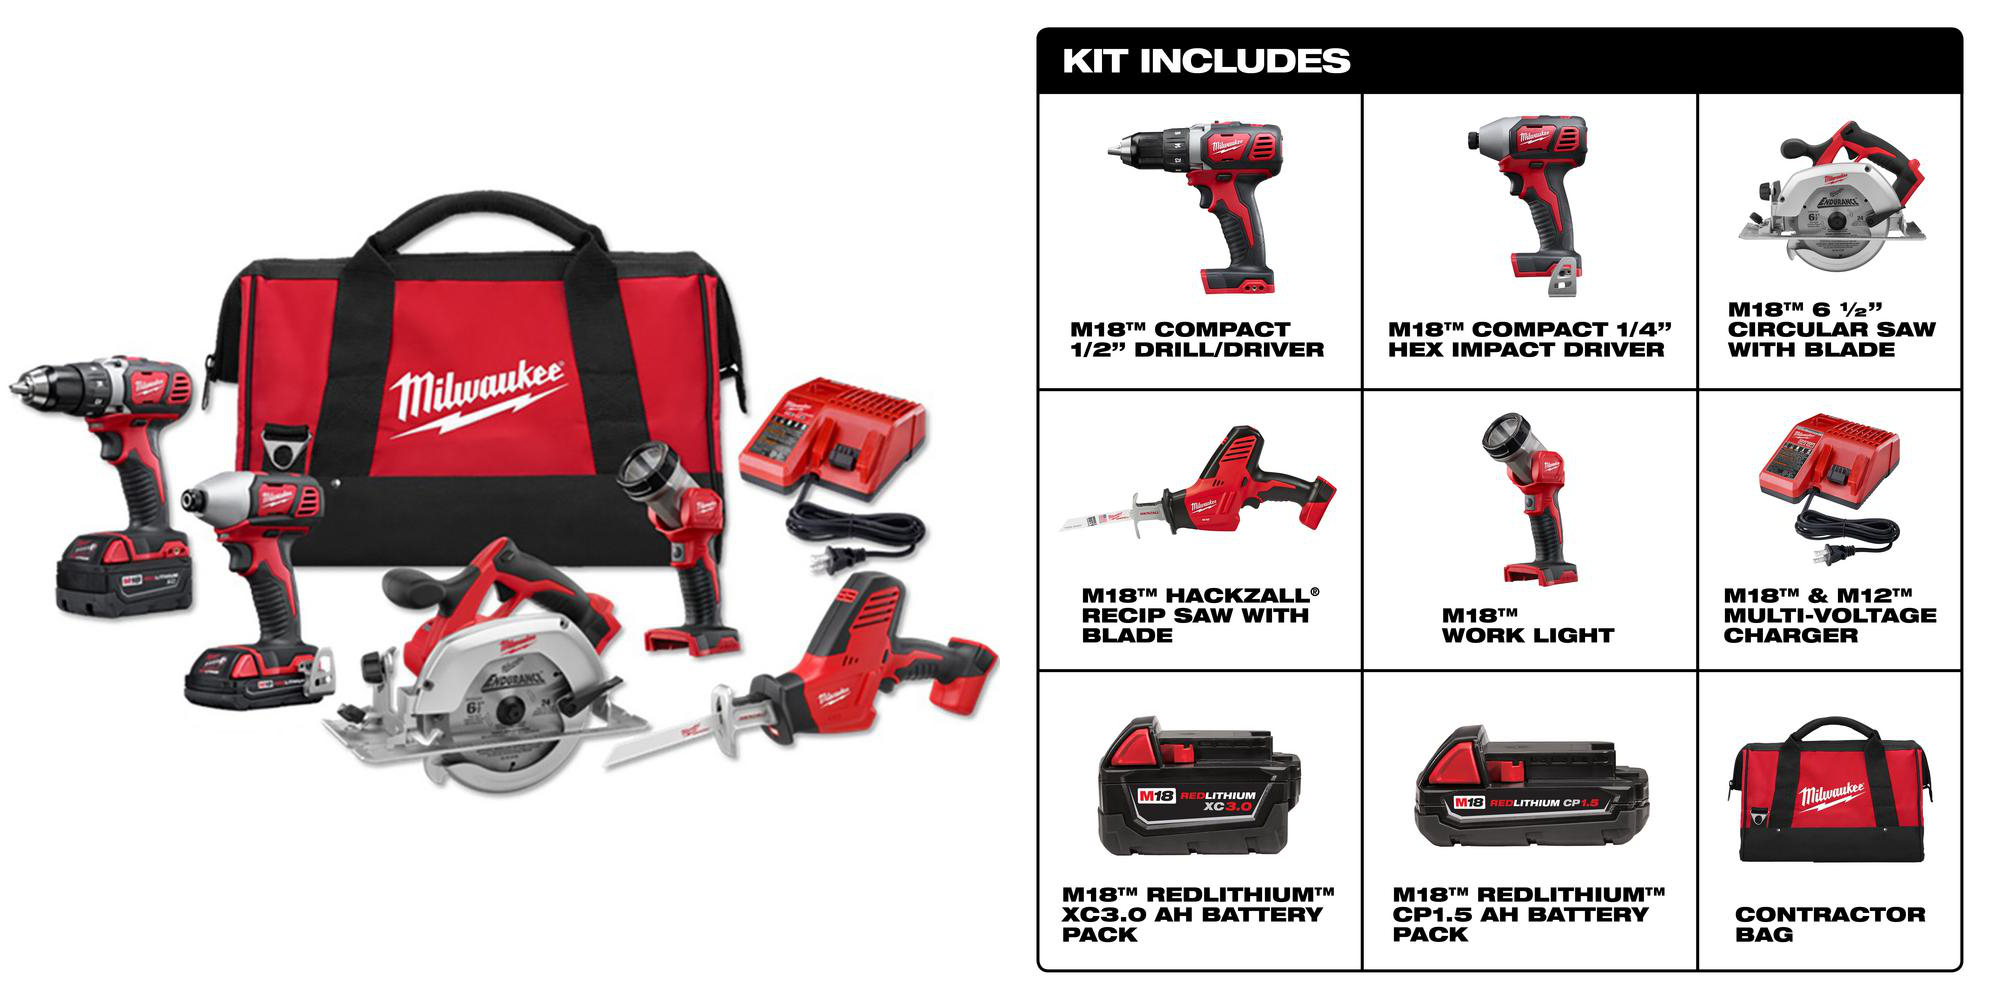 Knock out nearly any project w/ Milwaukee's M18 Cordless 5-Tool Kit: $299 (Reg. $559)